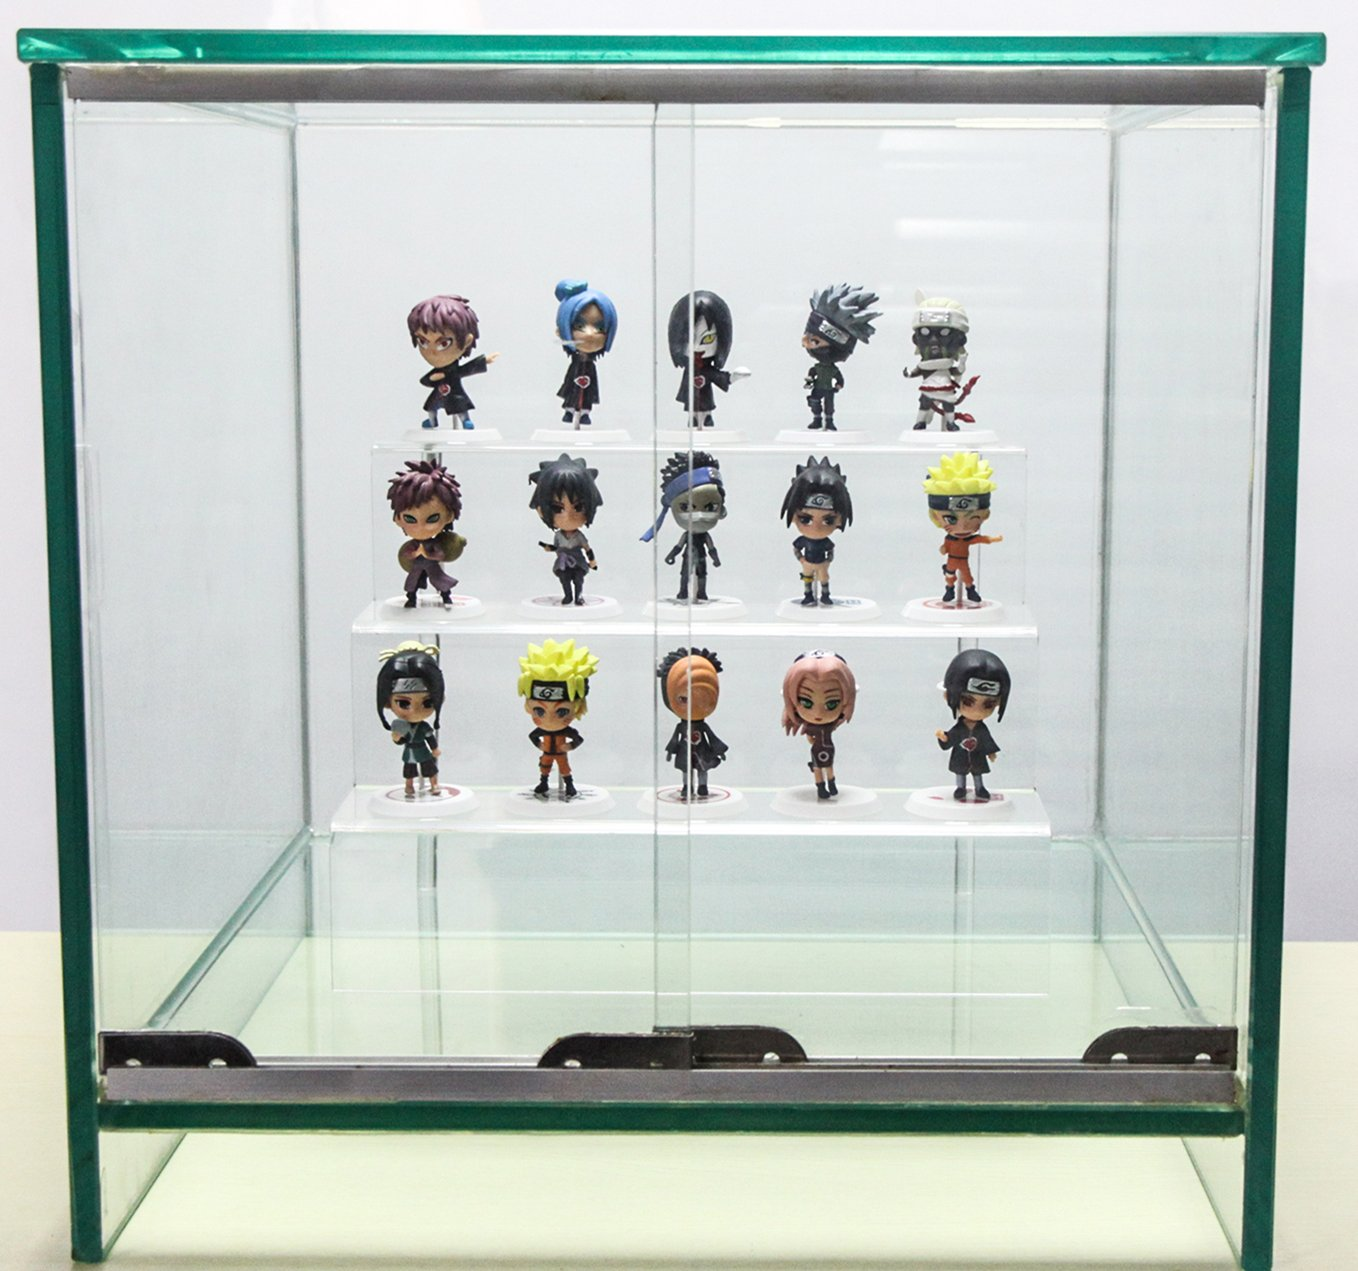 Acrylic Riser Stand Shelf for Amiibo Funko Pop Figure Display Clear 3-Tier 9x6 inch 3 Steps Acrylic Display for Decoration and Organizer-Small